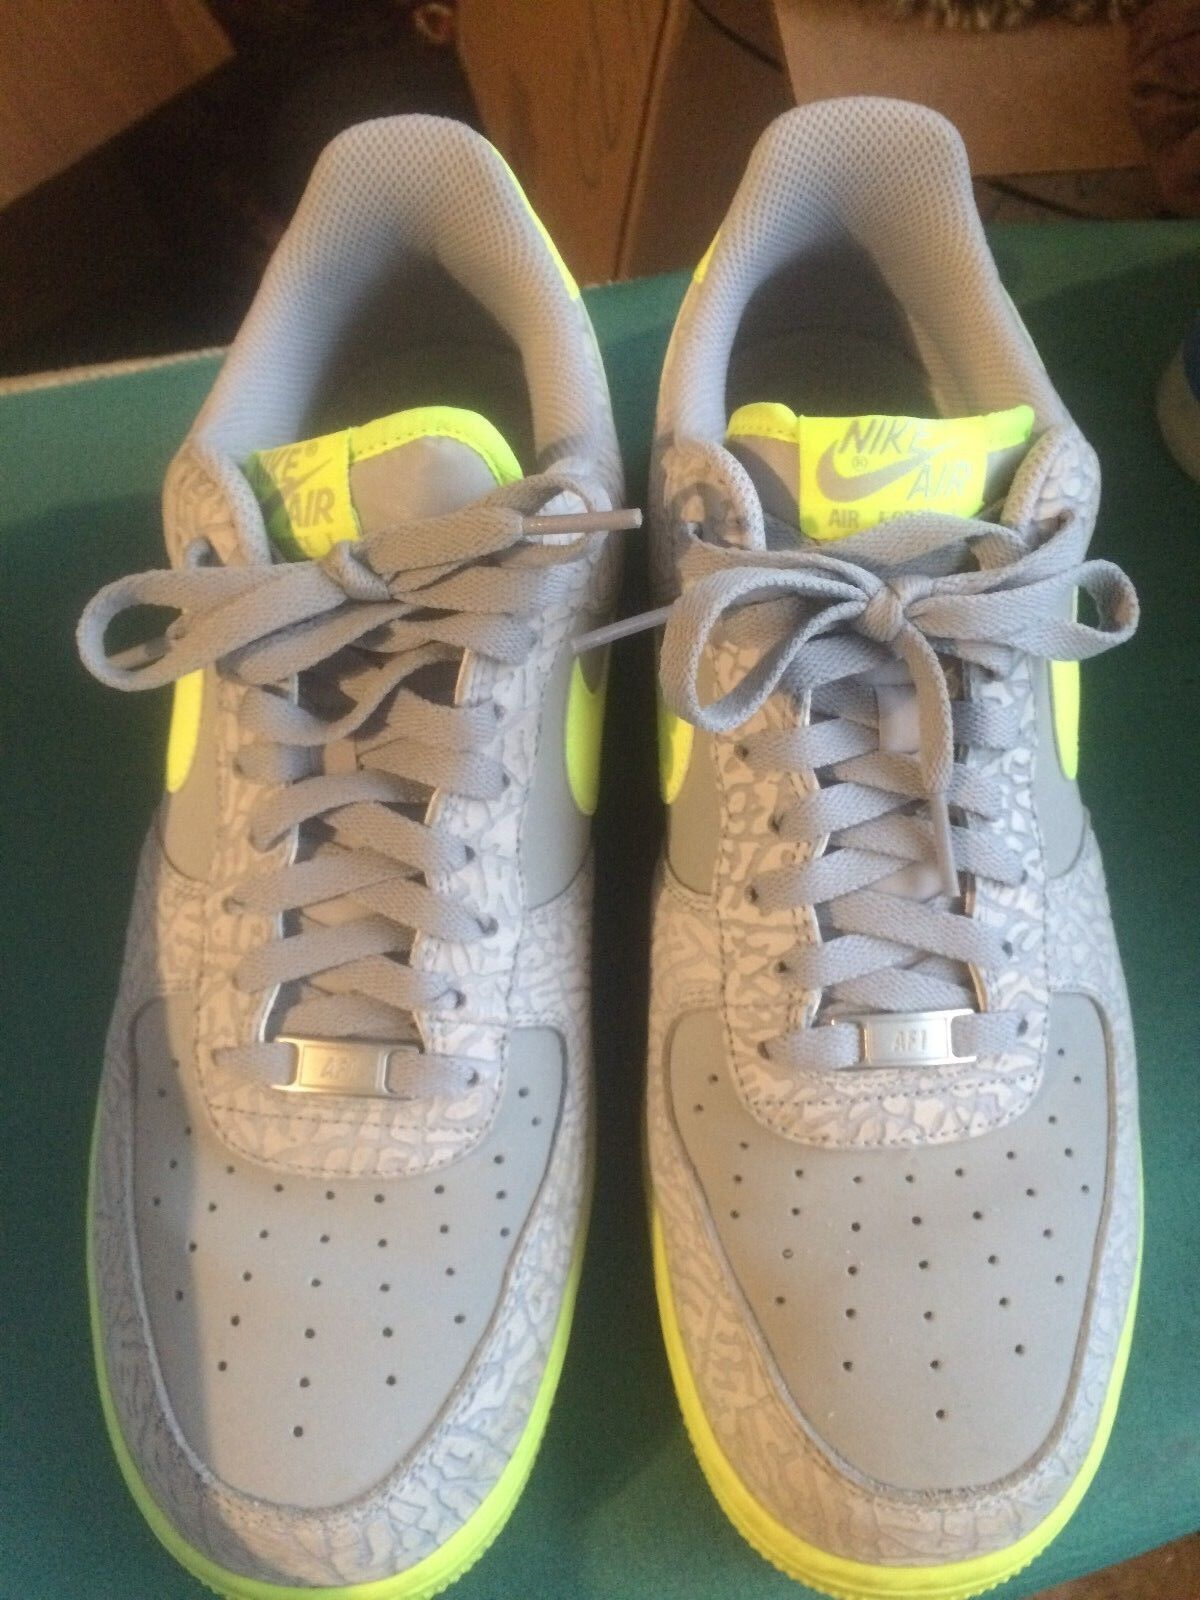 Men's Nike Air Force 1 shoes -Size 11.5